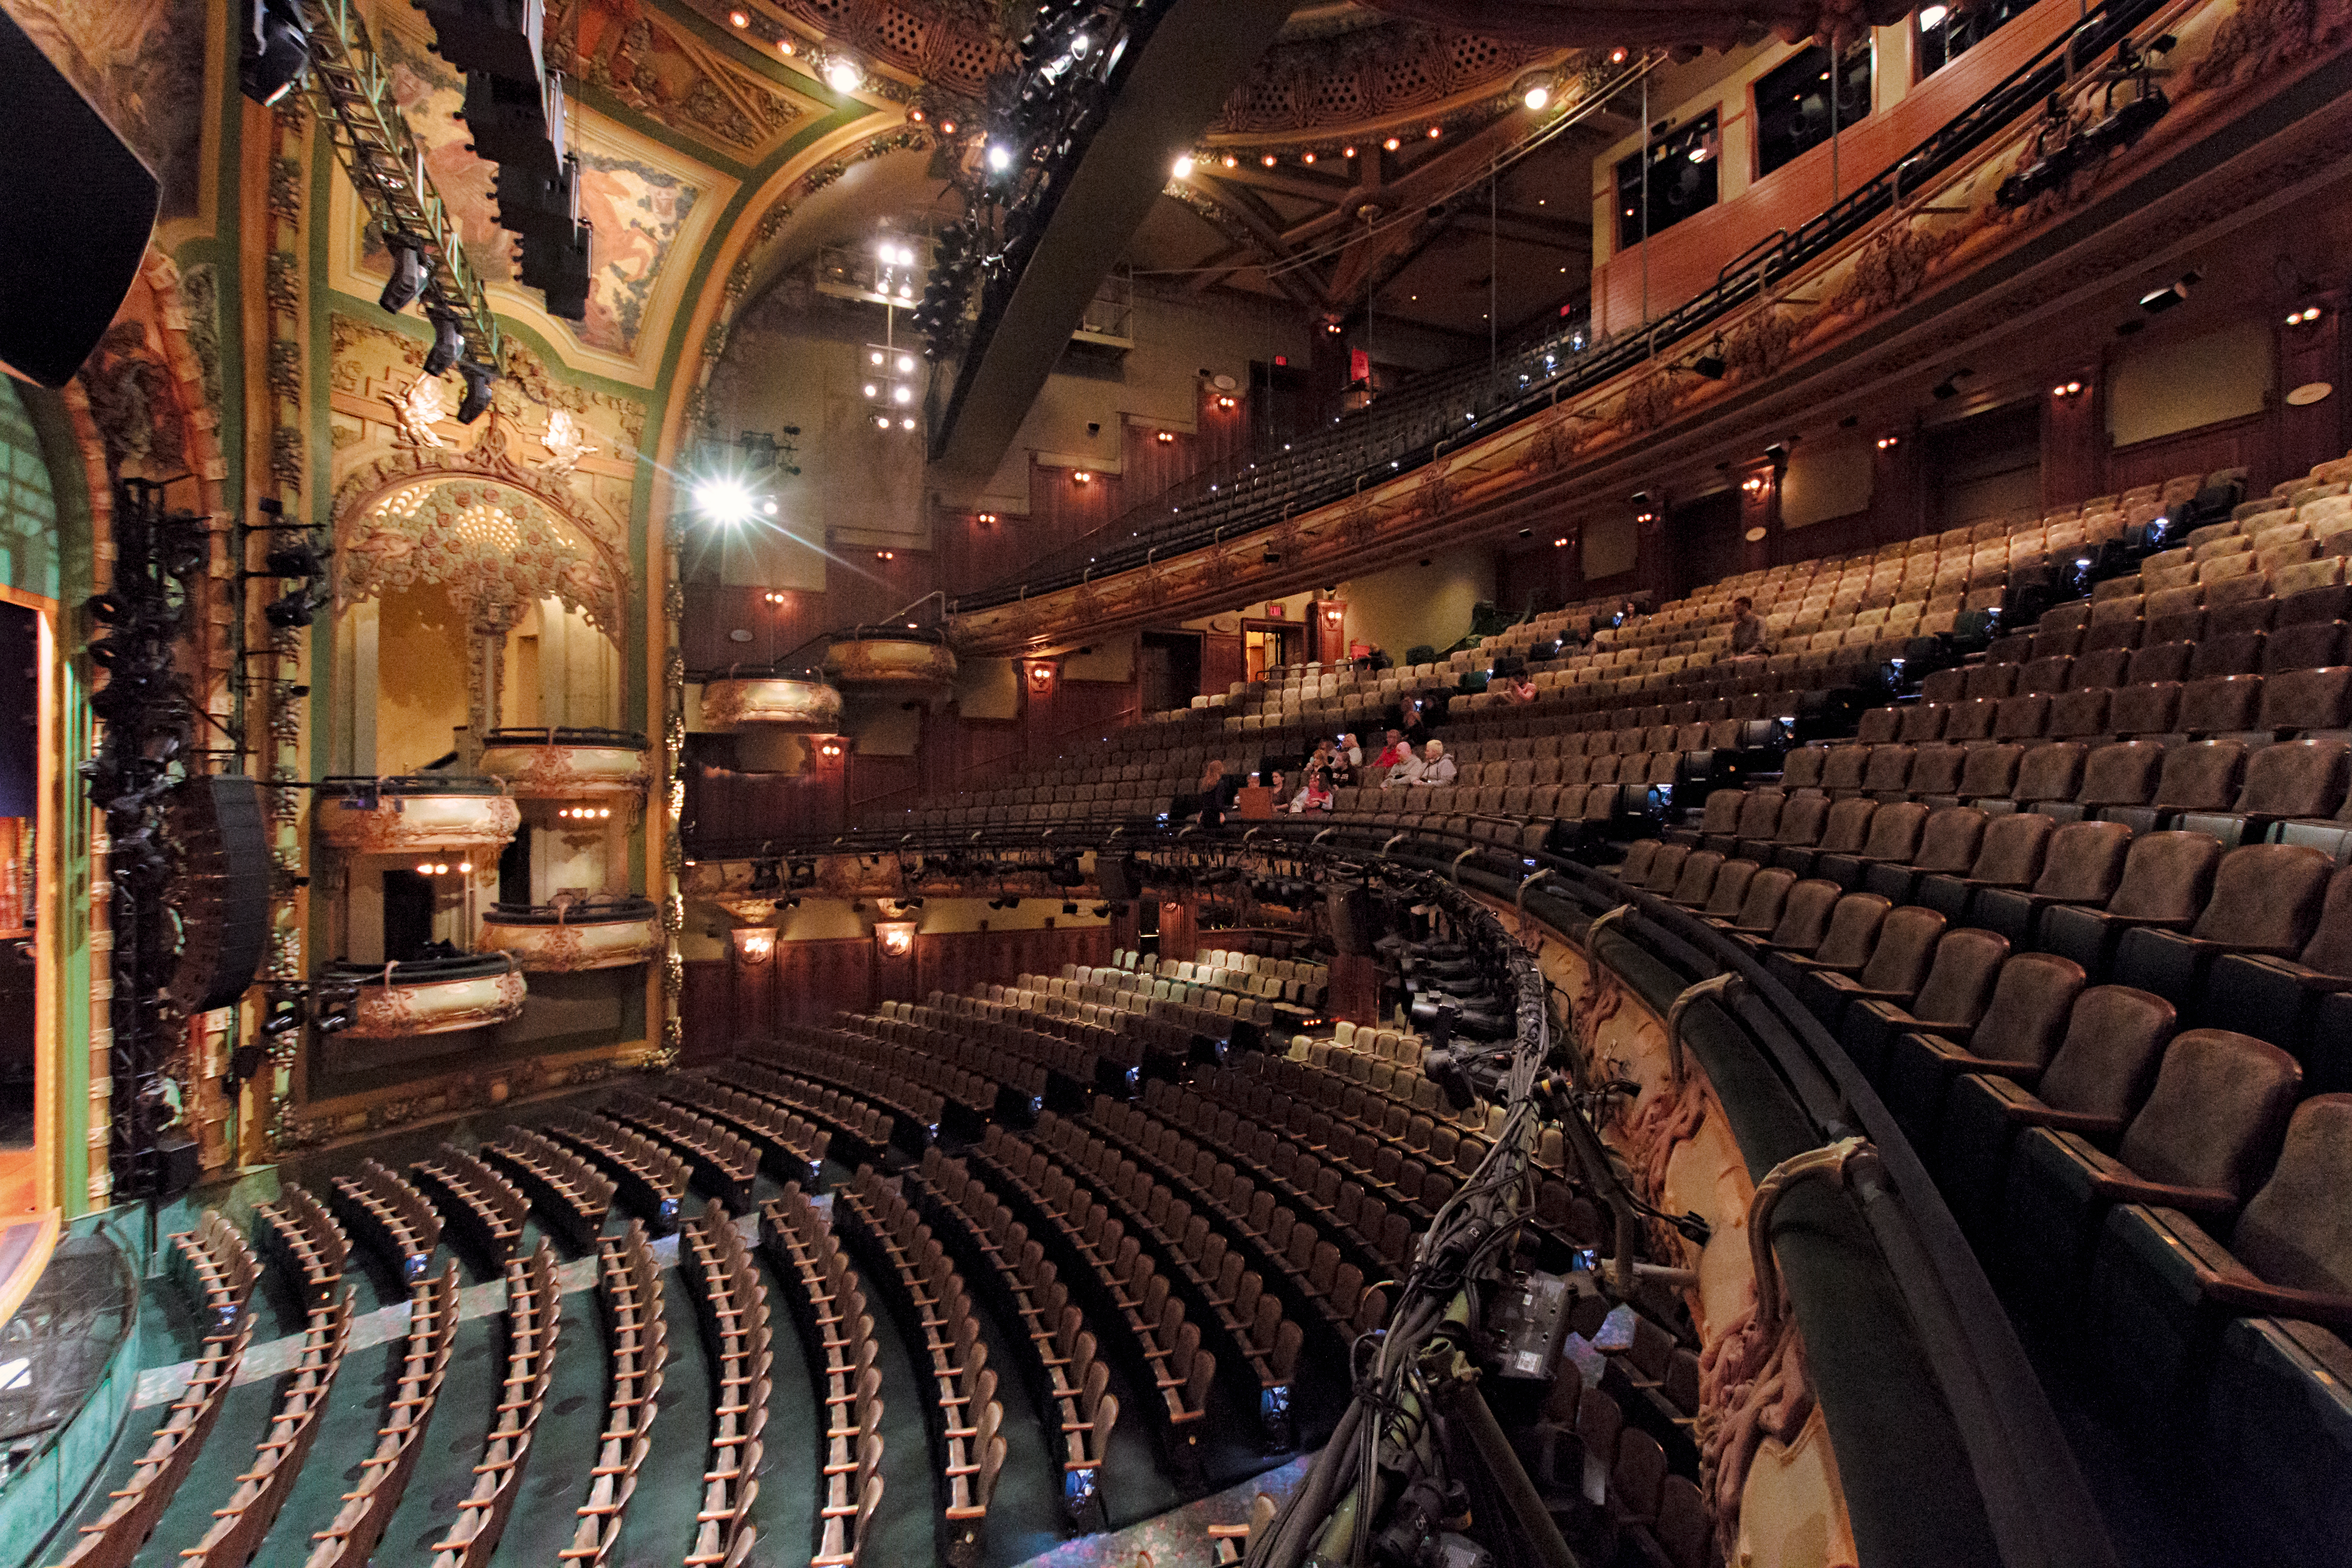 Seeing the New Amsterdam Theatre in all its glory is like a show in itself